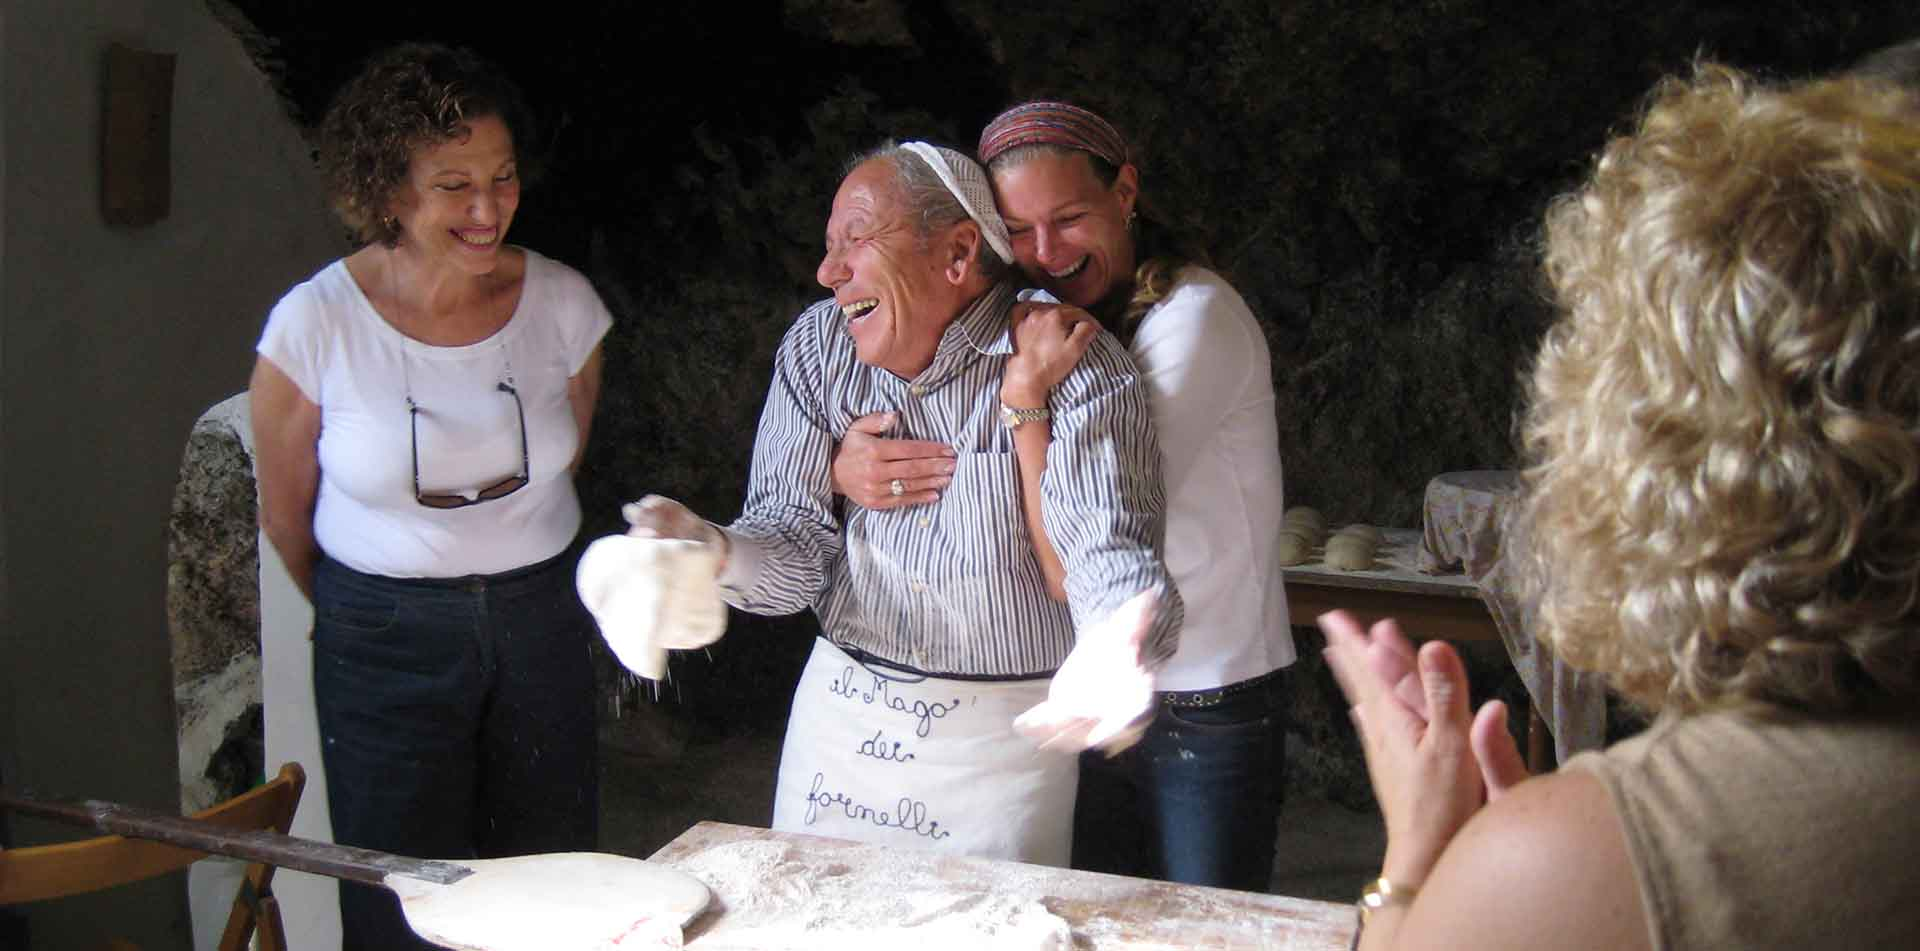 Friends Making Pizza in Italy